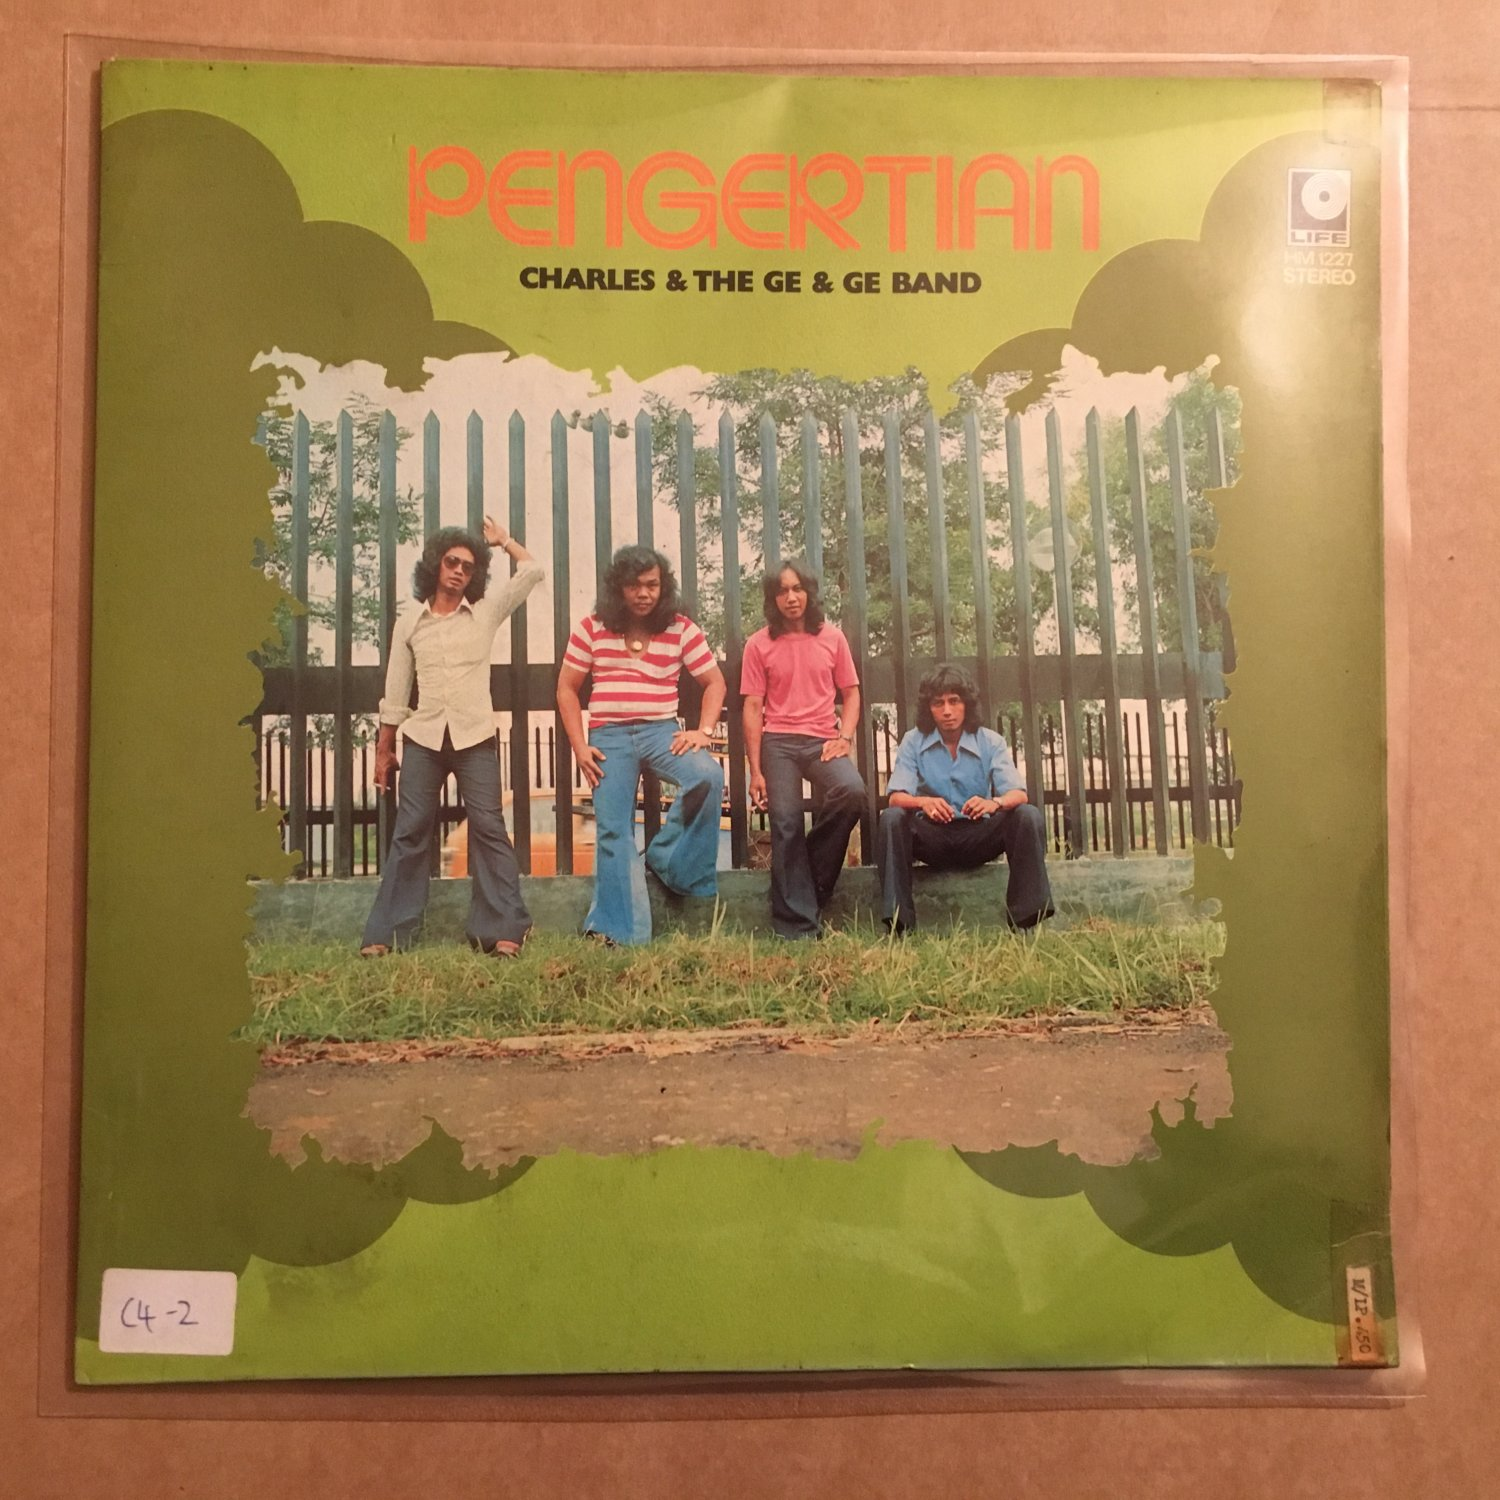 CHARLES & THE GE GE BAND LP pengertian INDONESIA PSYCH BRAZIL BREAKS POP mp3 LISTEN